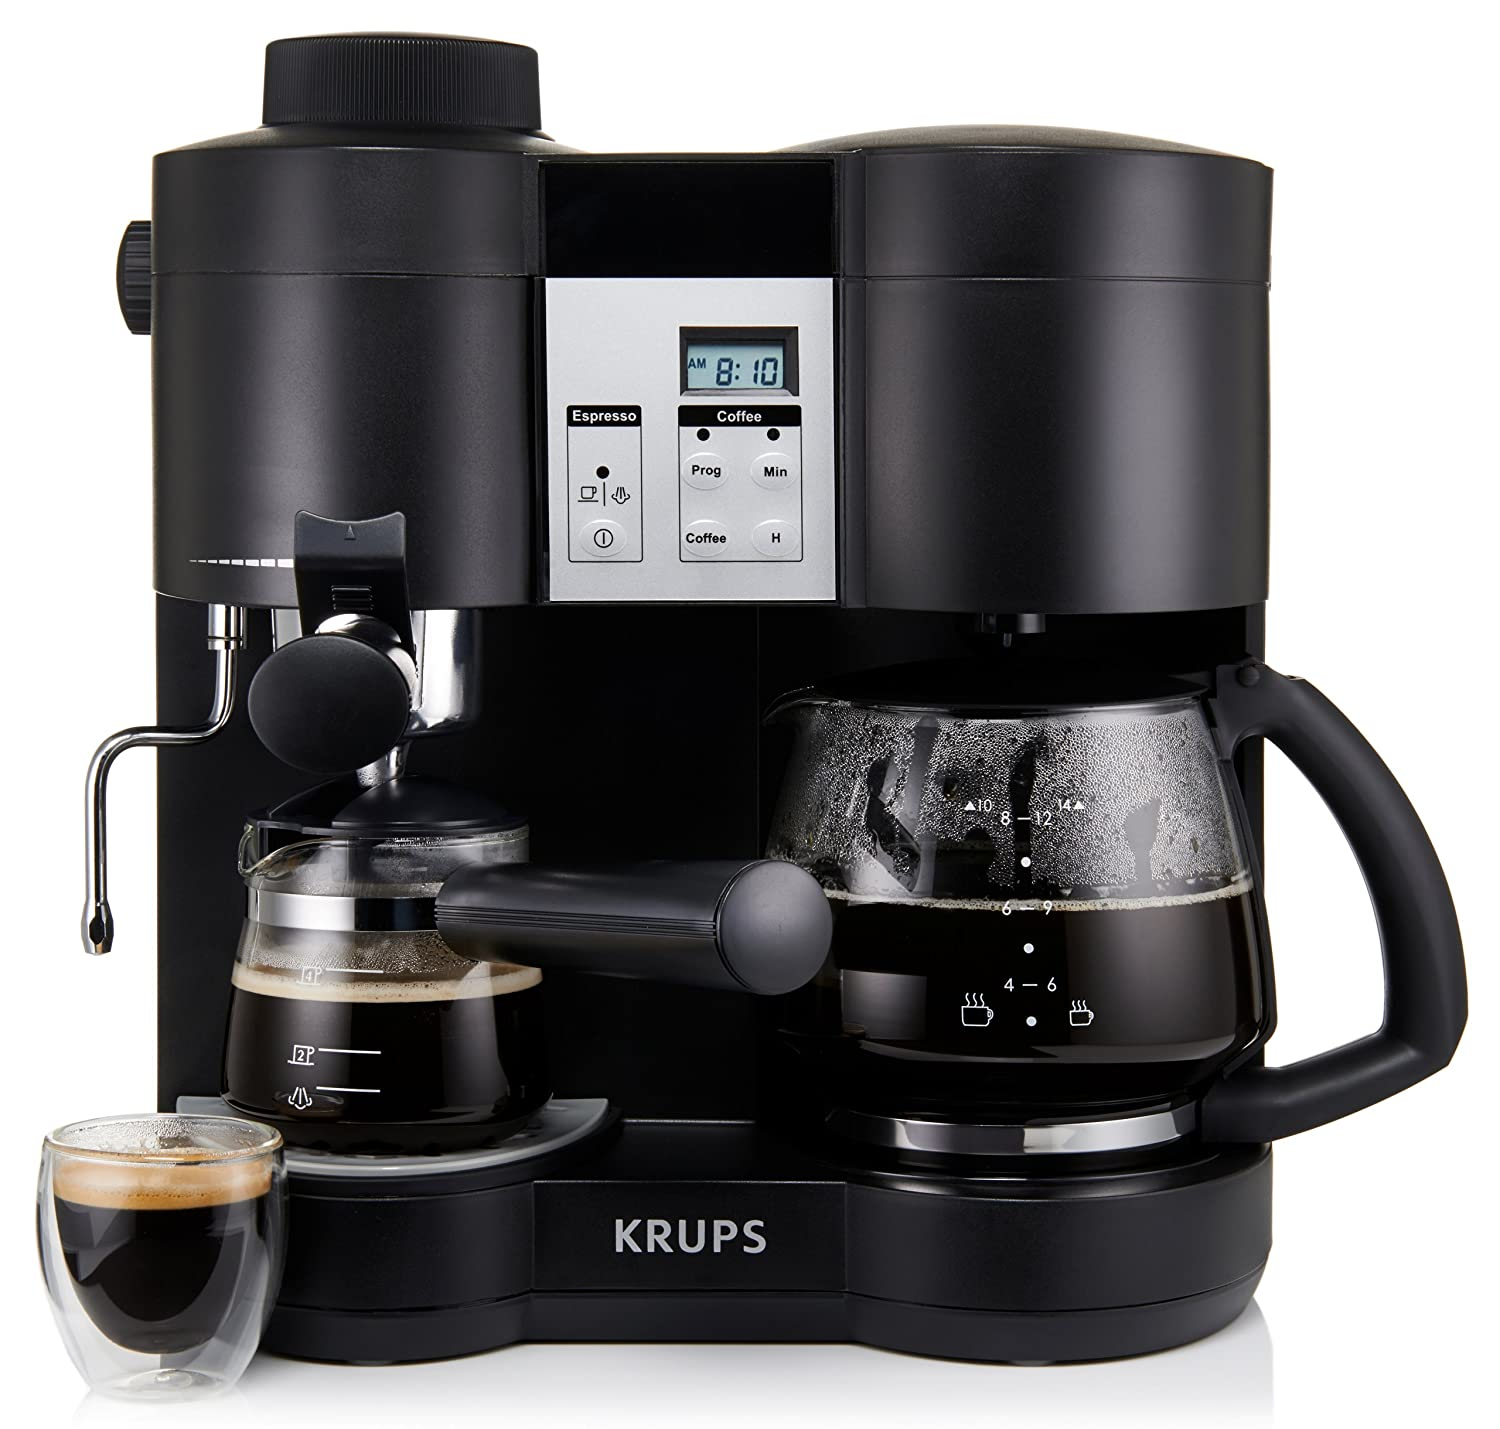 10 best instant coffee makers 2017 For ome & Office List ...